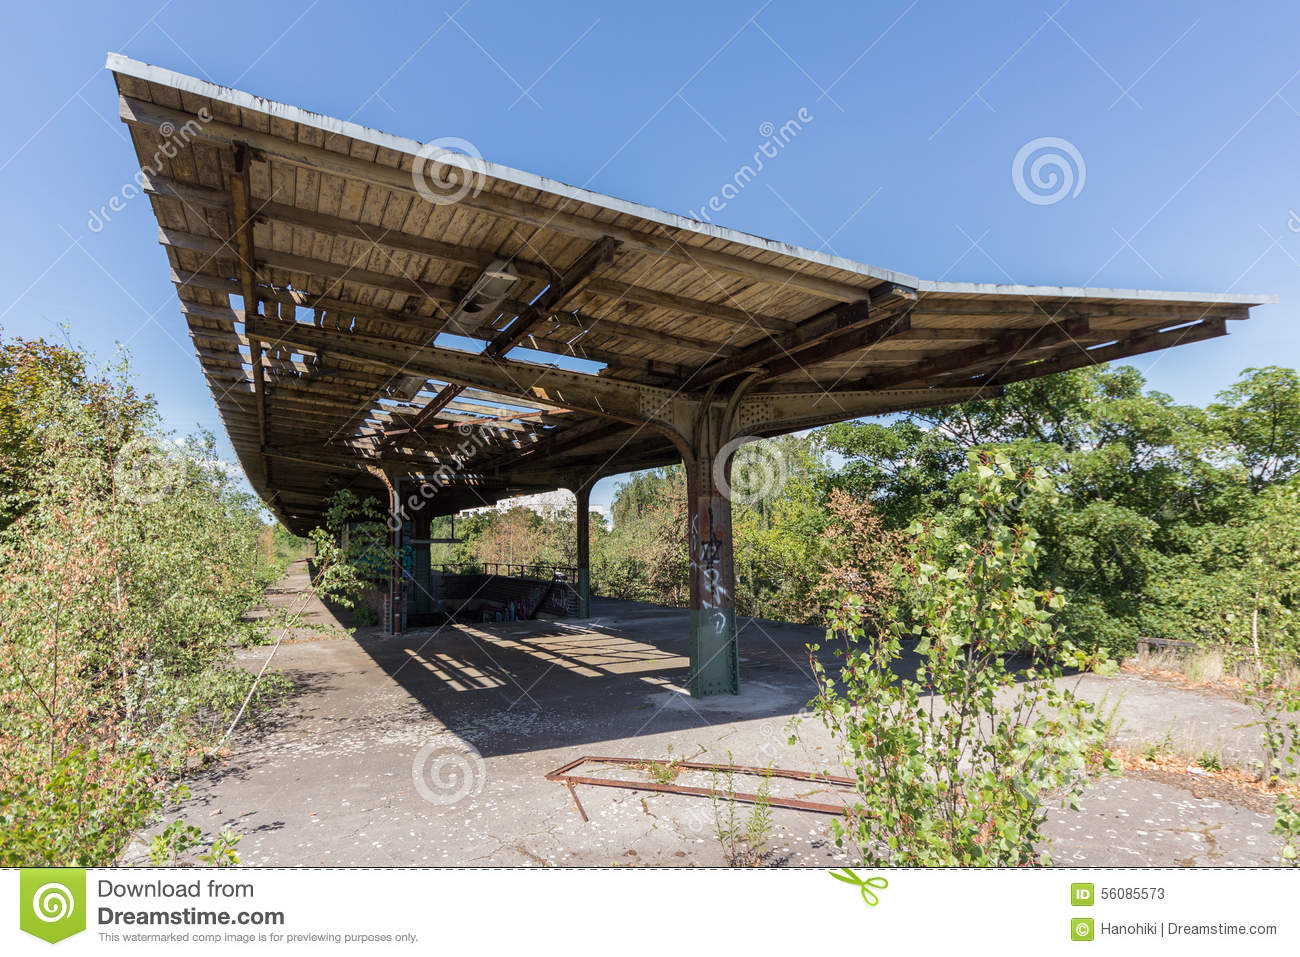 old train station, abandoned and overgrown - outdoor with